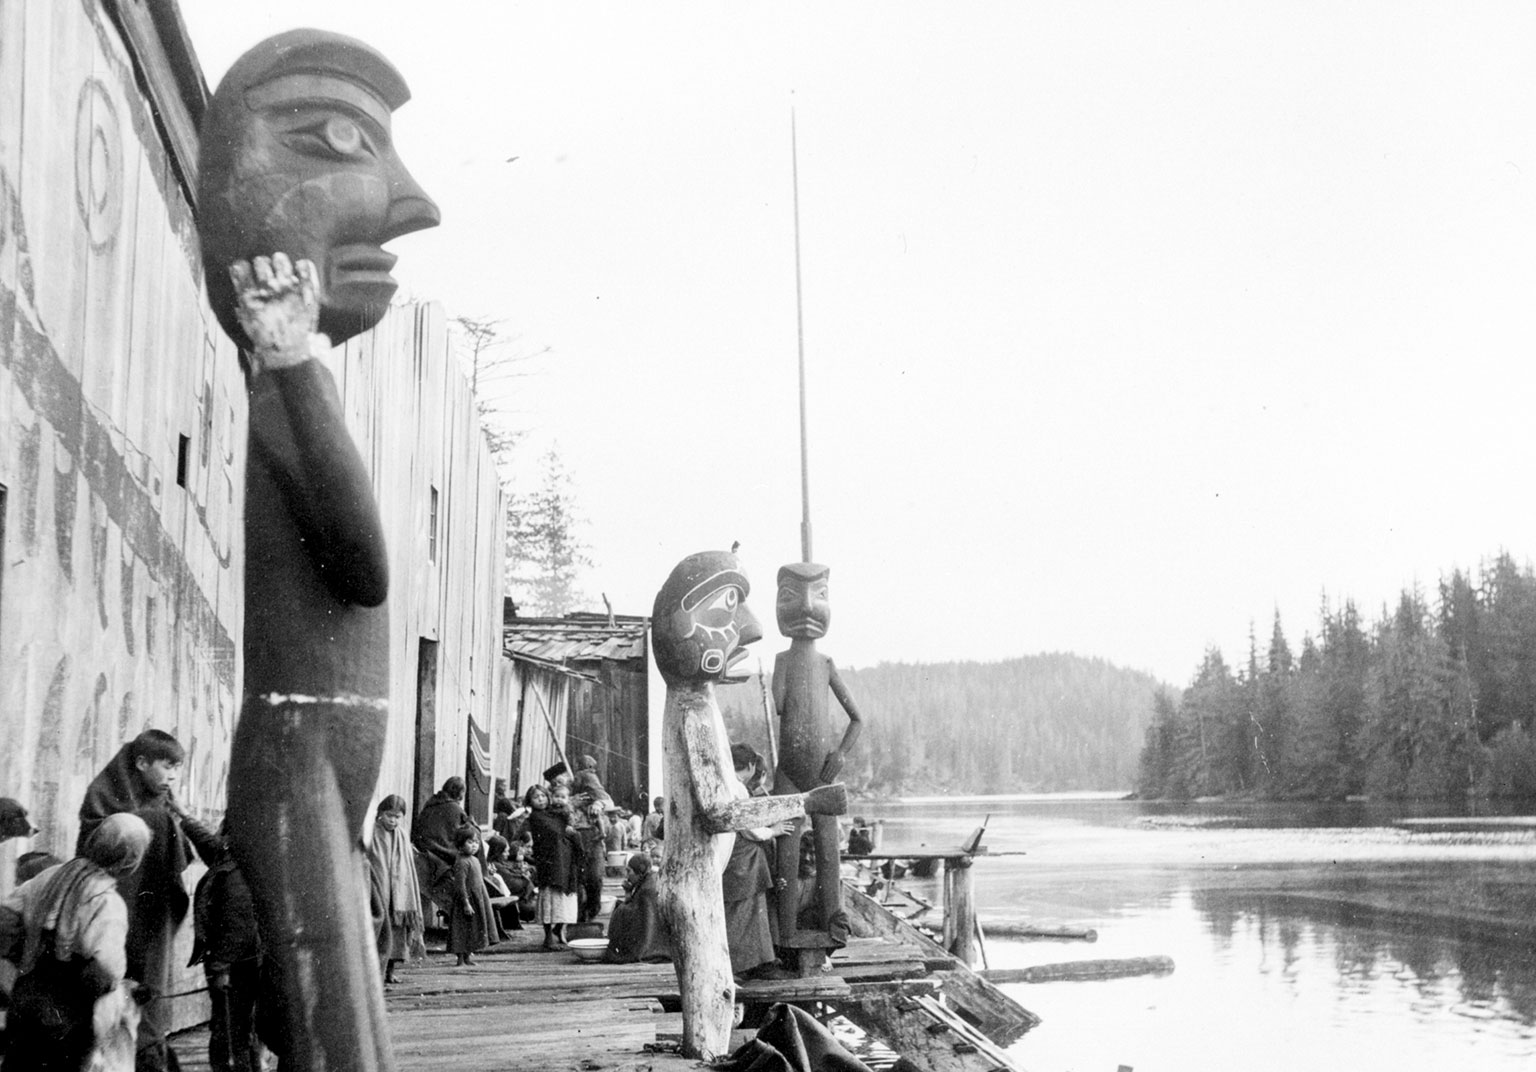 Photograph courtesy of the Royal BC Museum and Archives